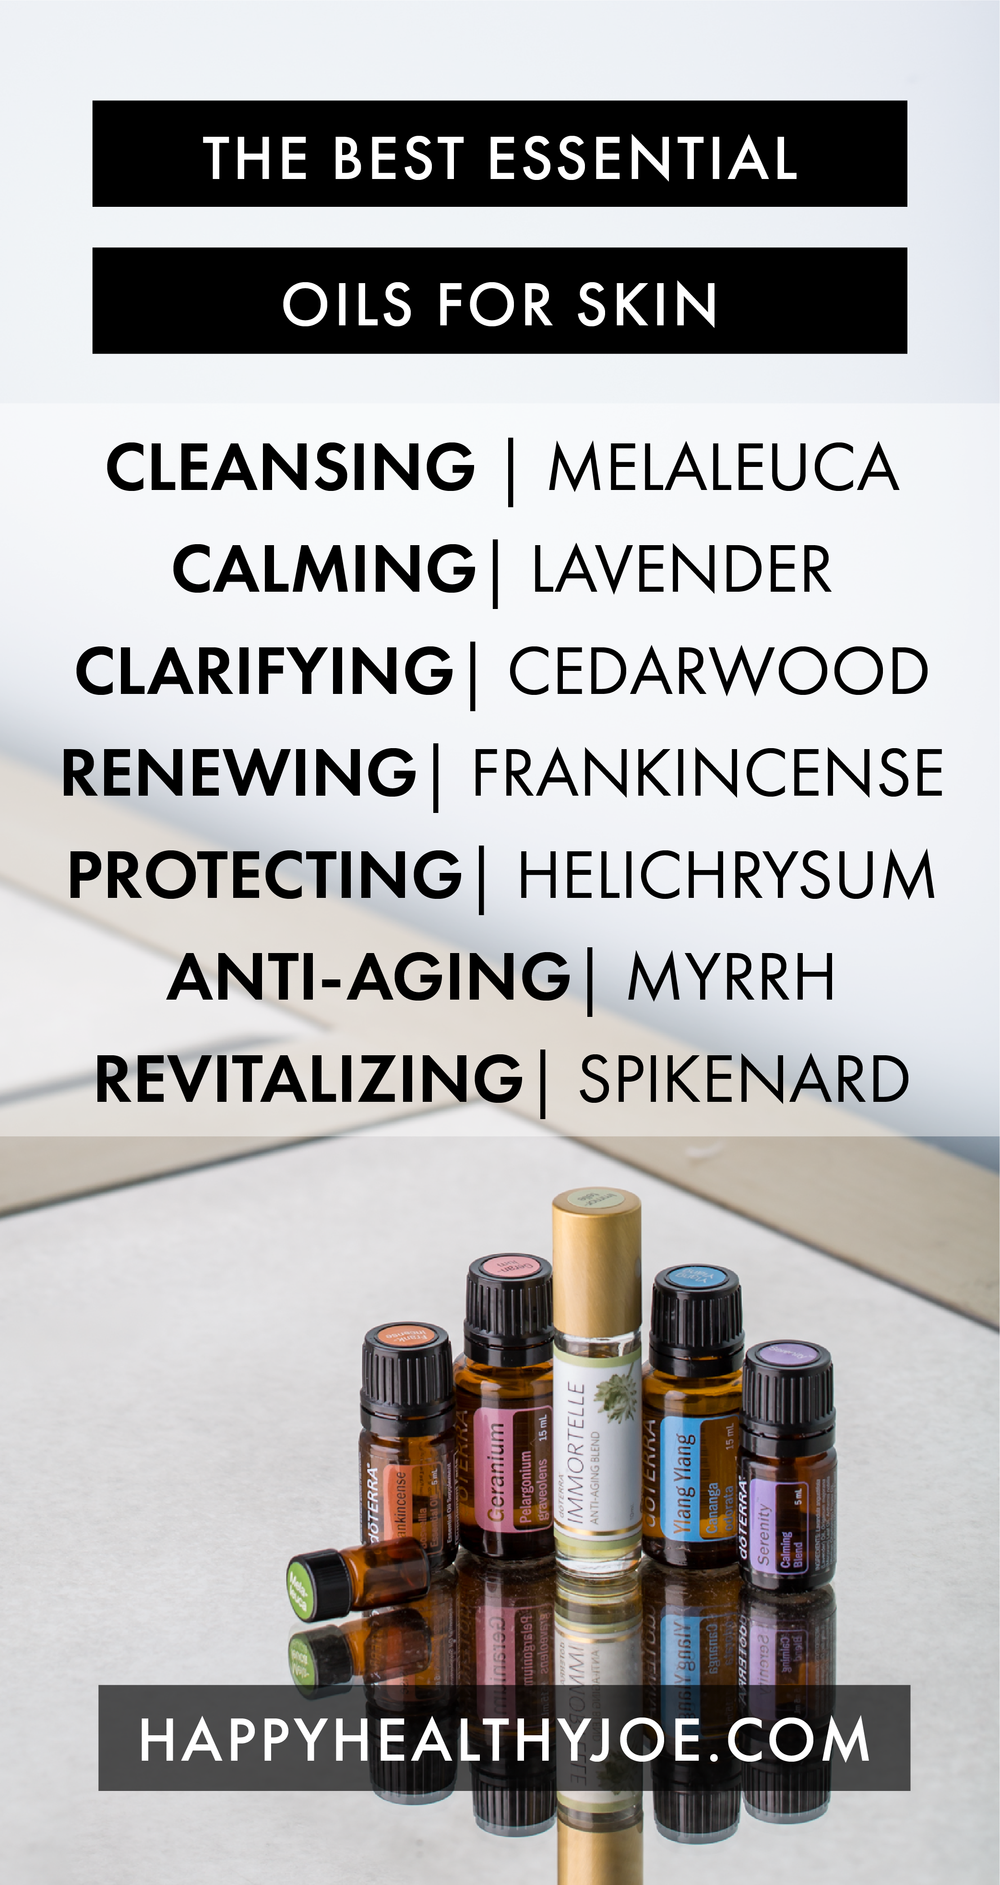 Pin me! - Save this essential oil infographic to Pinterest for easy reference!